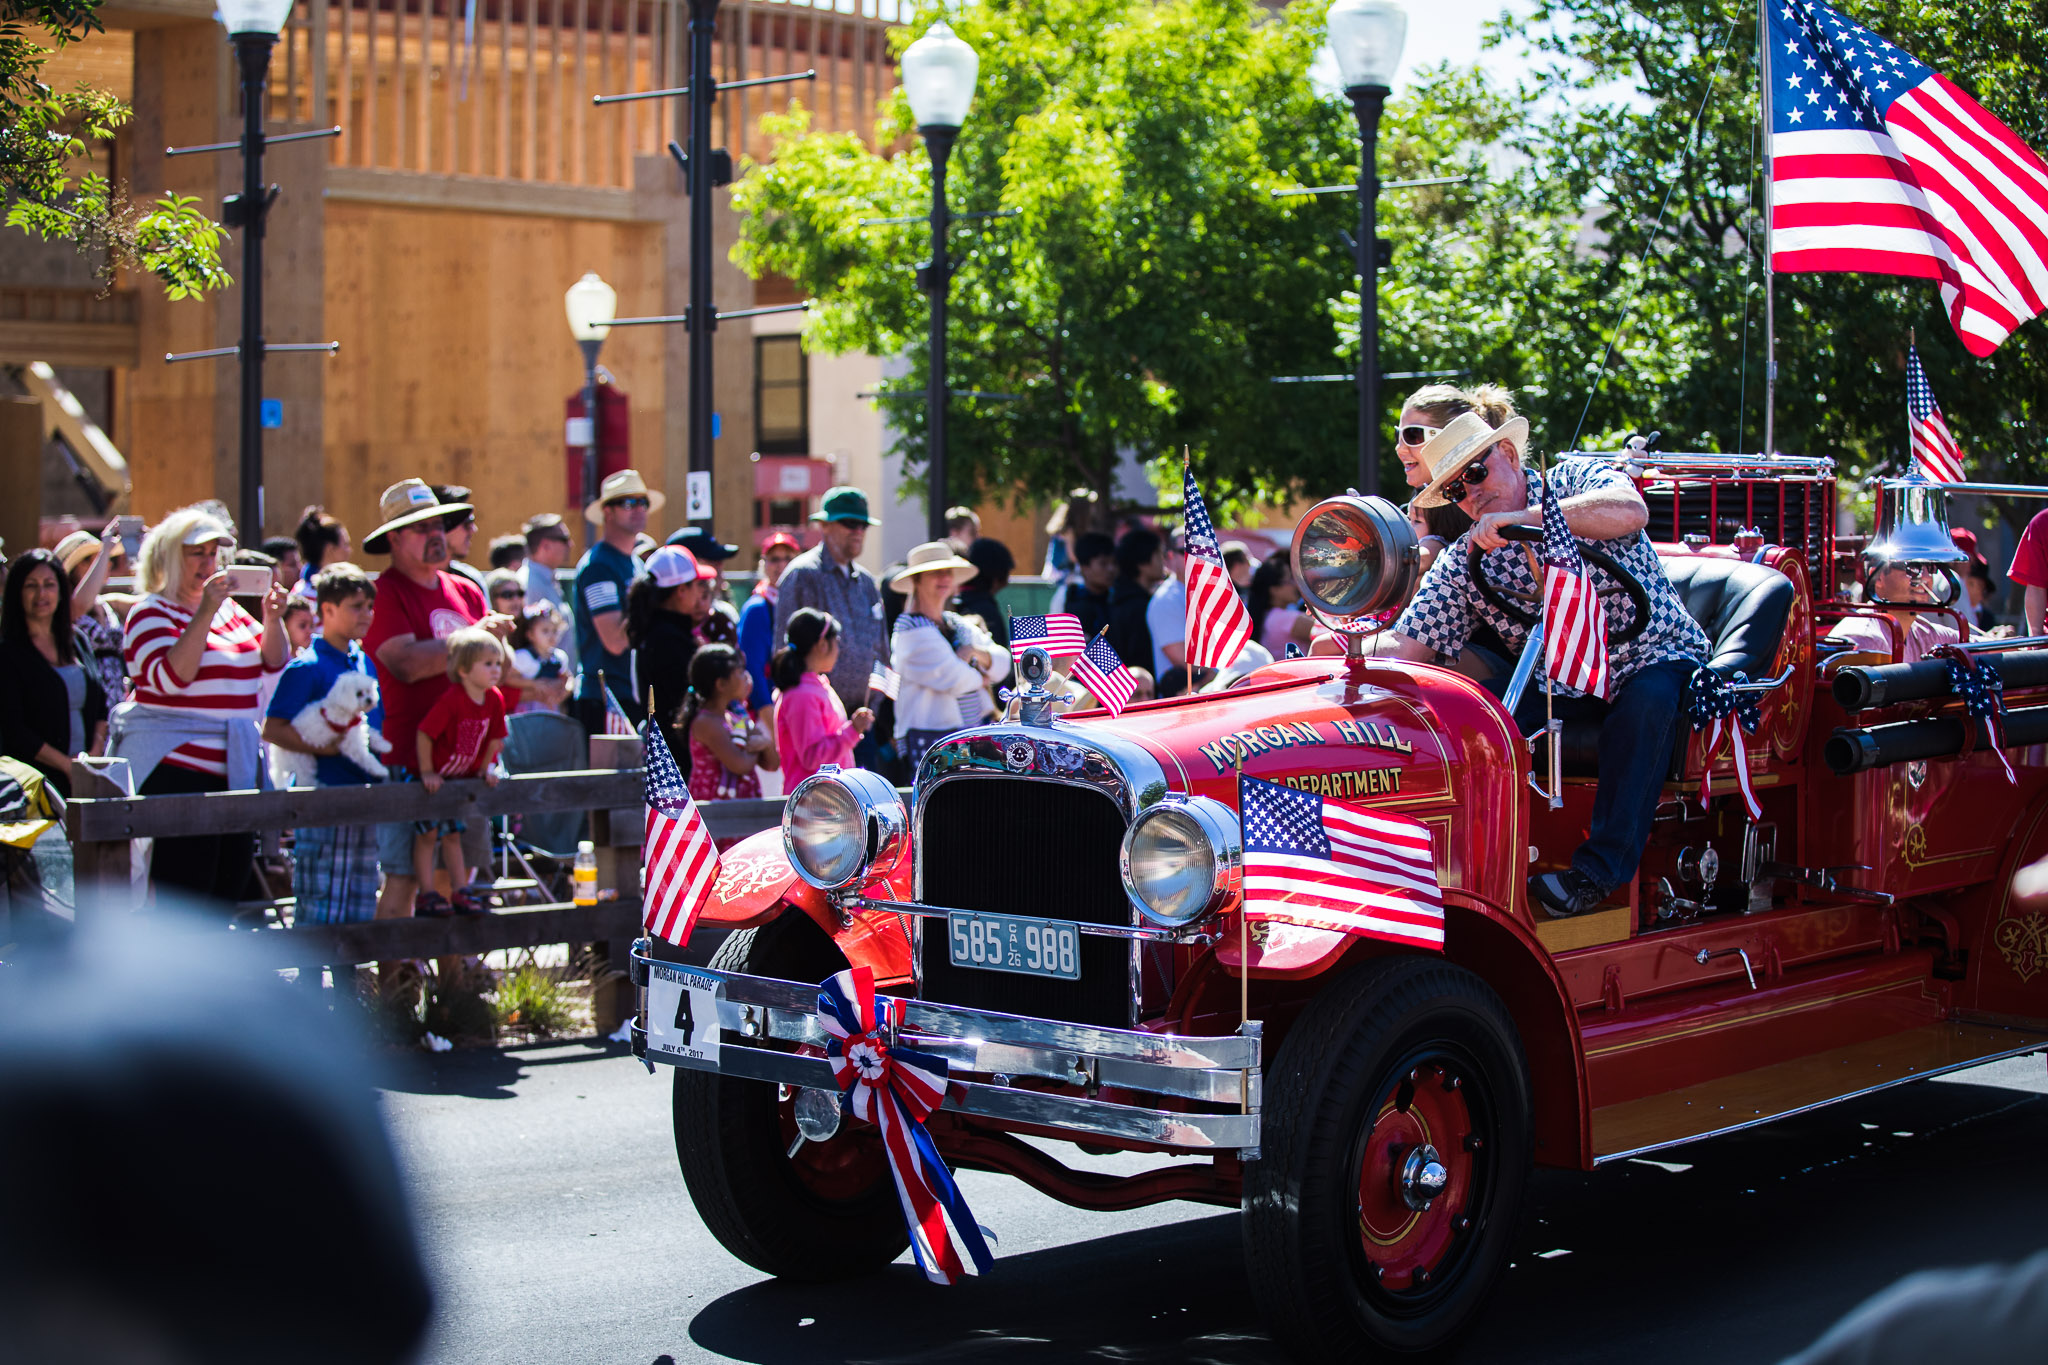 Archer_Inspired_Photography_Morgan_Hill_California_4th_of_july_parade-43.jpg